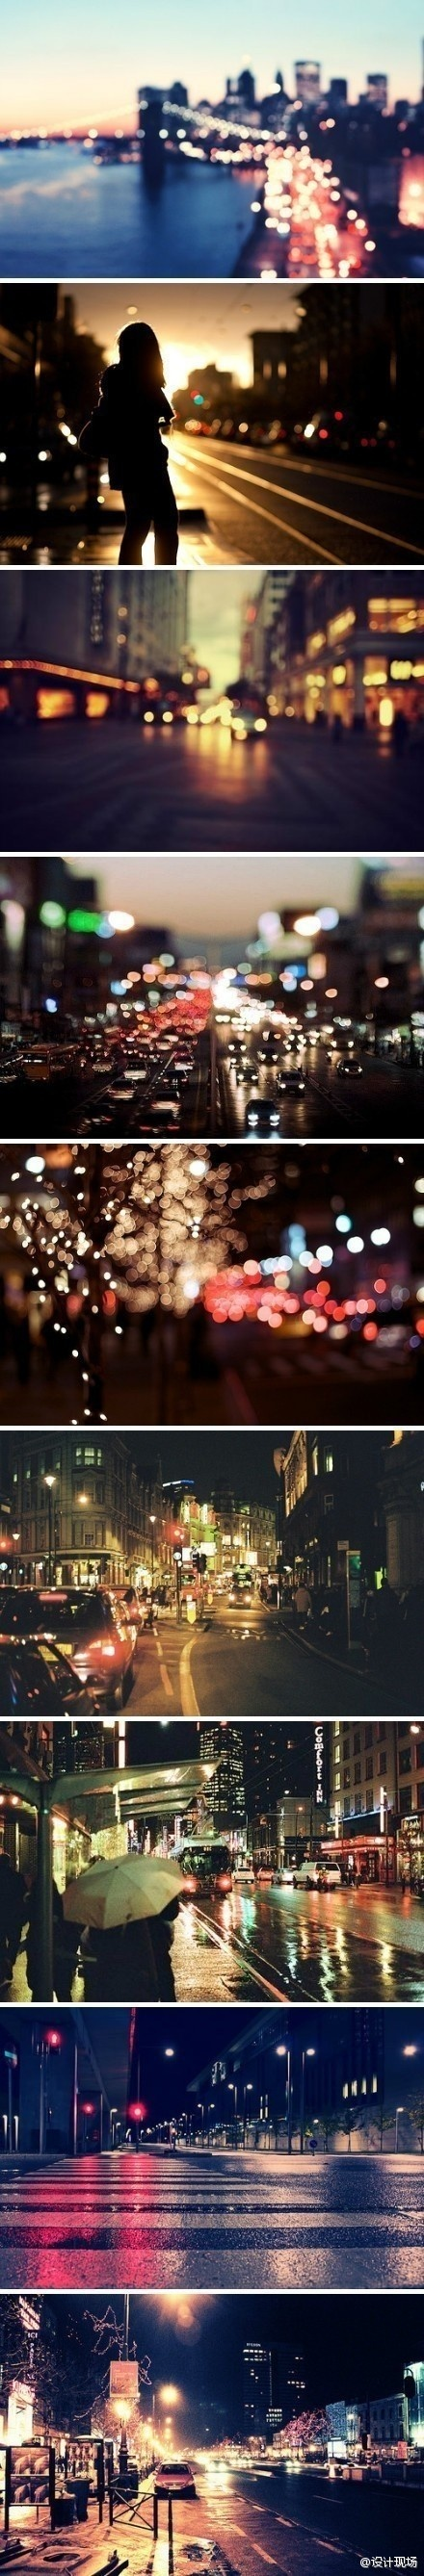 Lovely set of dusk-night city photos- ap photo concentration ideas!